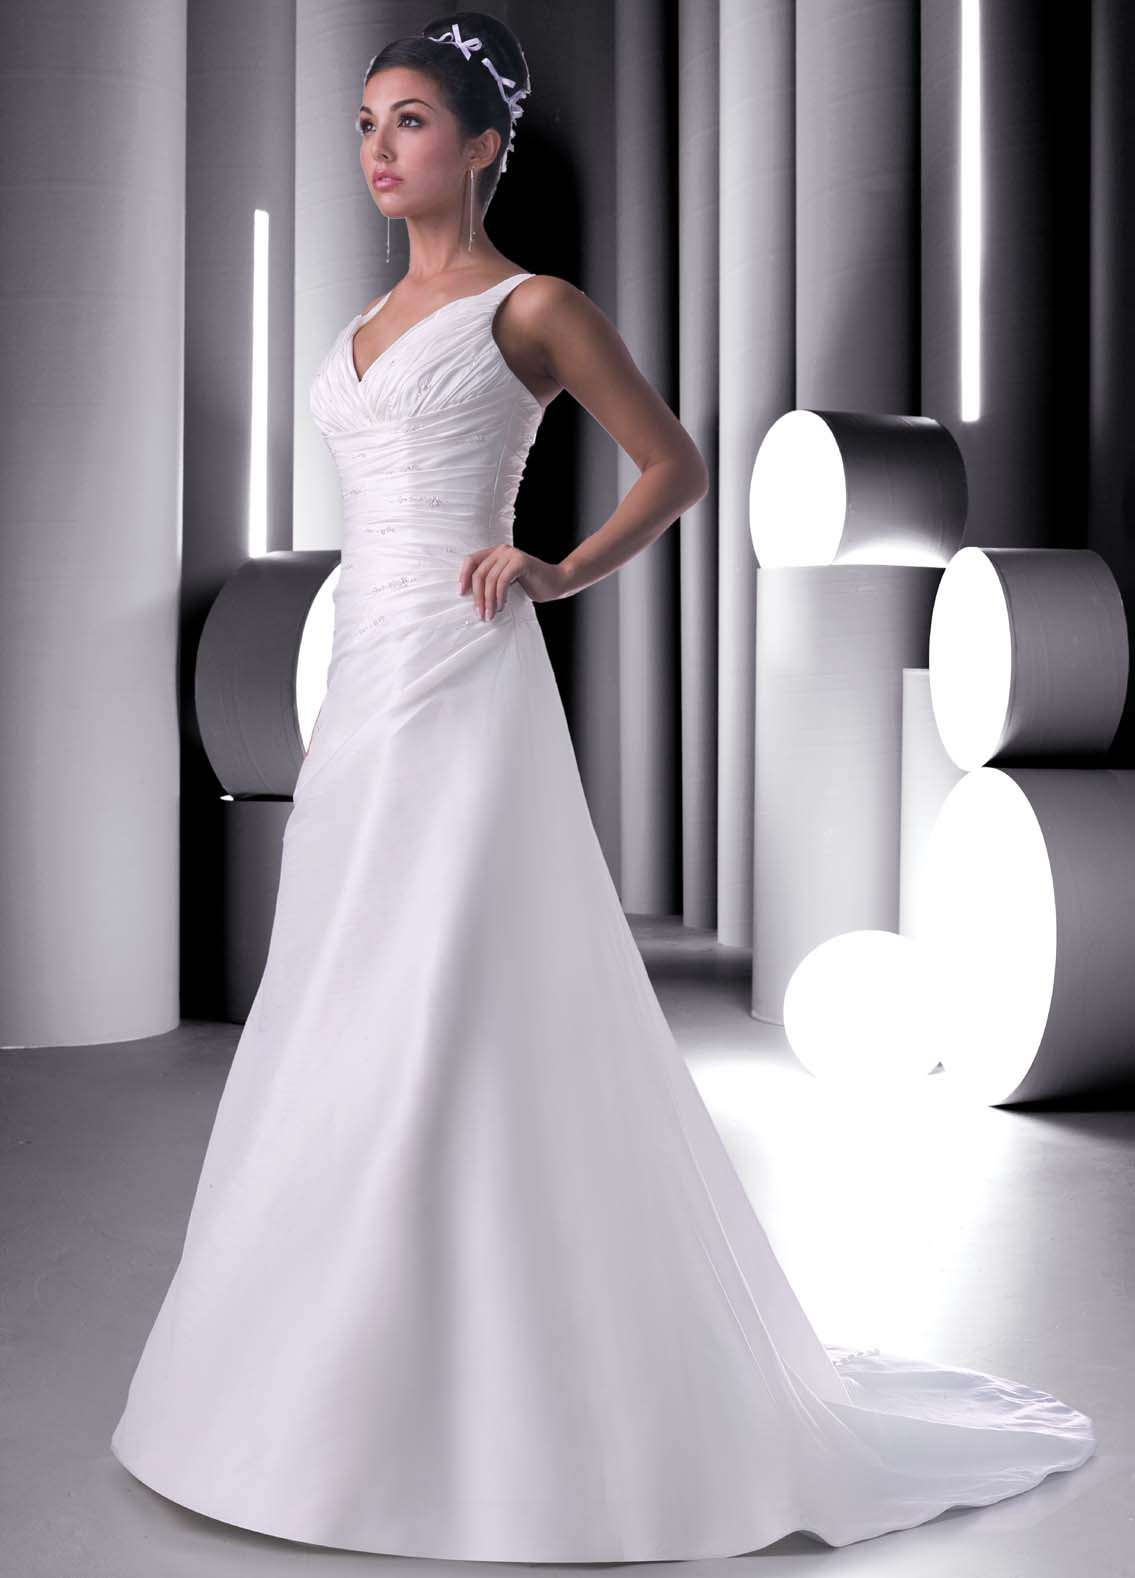 White Wedding Dresses For  : Plain elegant white wedding dress designs